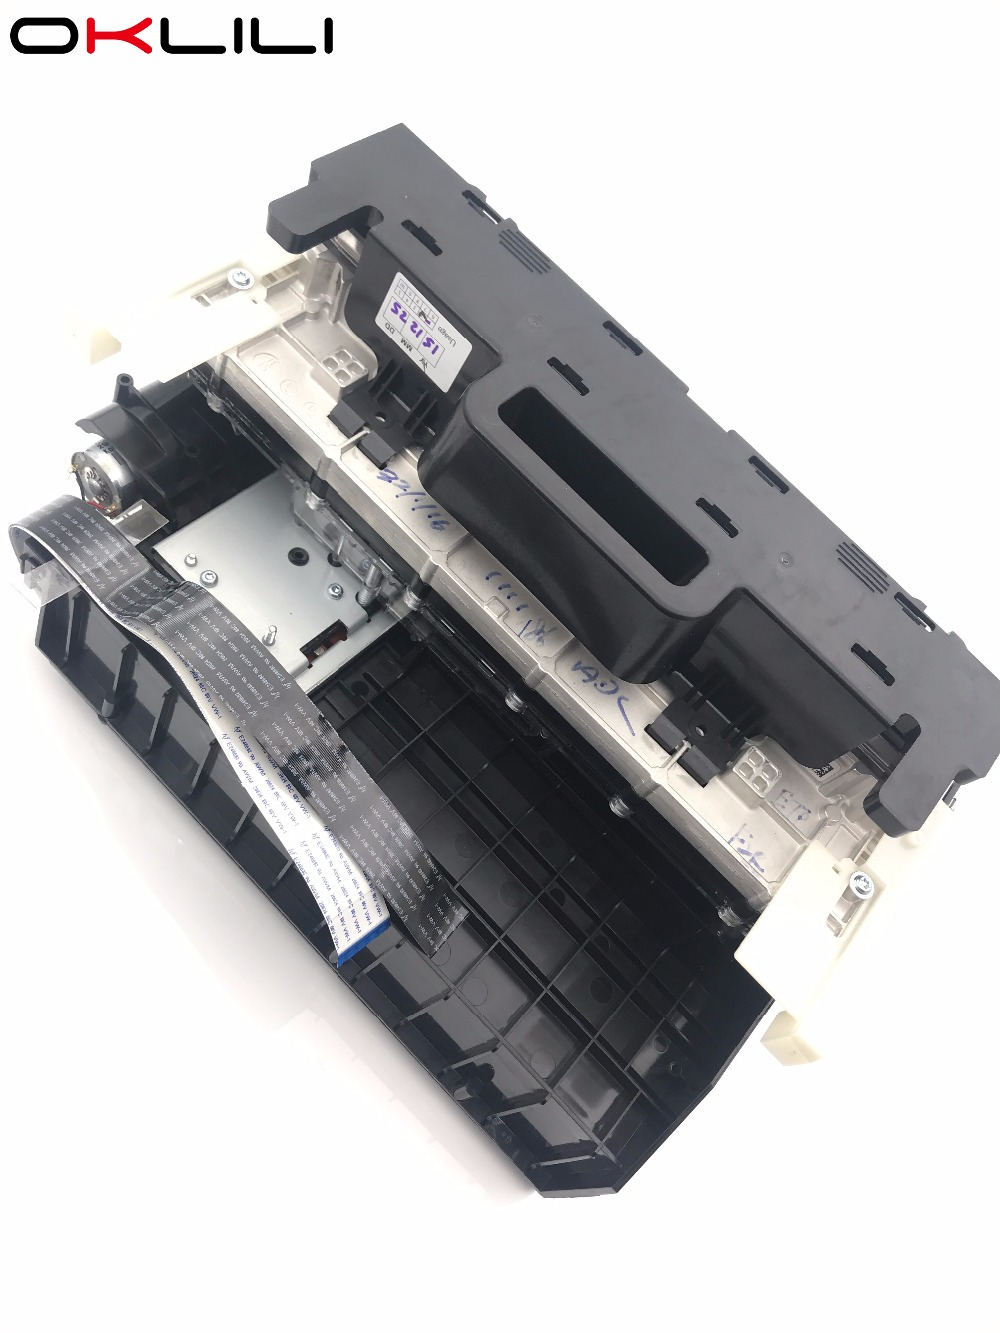 CN646-60014 970 971 970XL 971XL Printhead Printer Print Head for HP OfficeJet Pro X451 X551 X476 X576 X451dn X451dw X476dn hp970 971 refill ink cartridge with auto reset chip for hp officejet pro x451dn x451dw x476dn x476dw x551dn x576dw printer 970